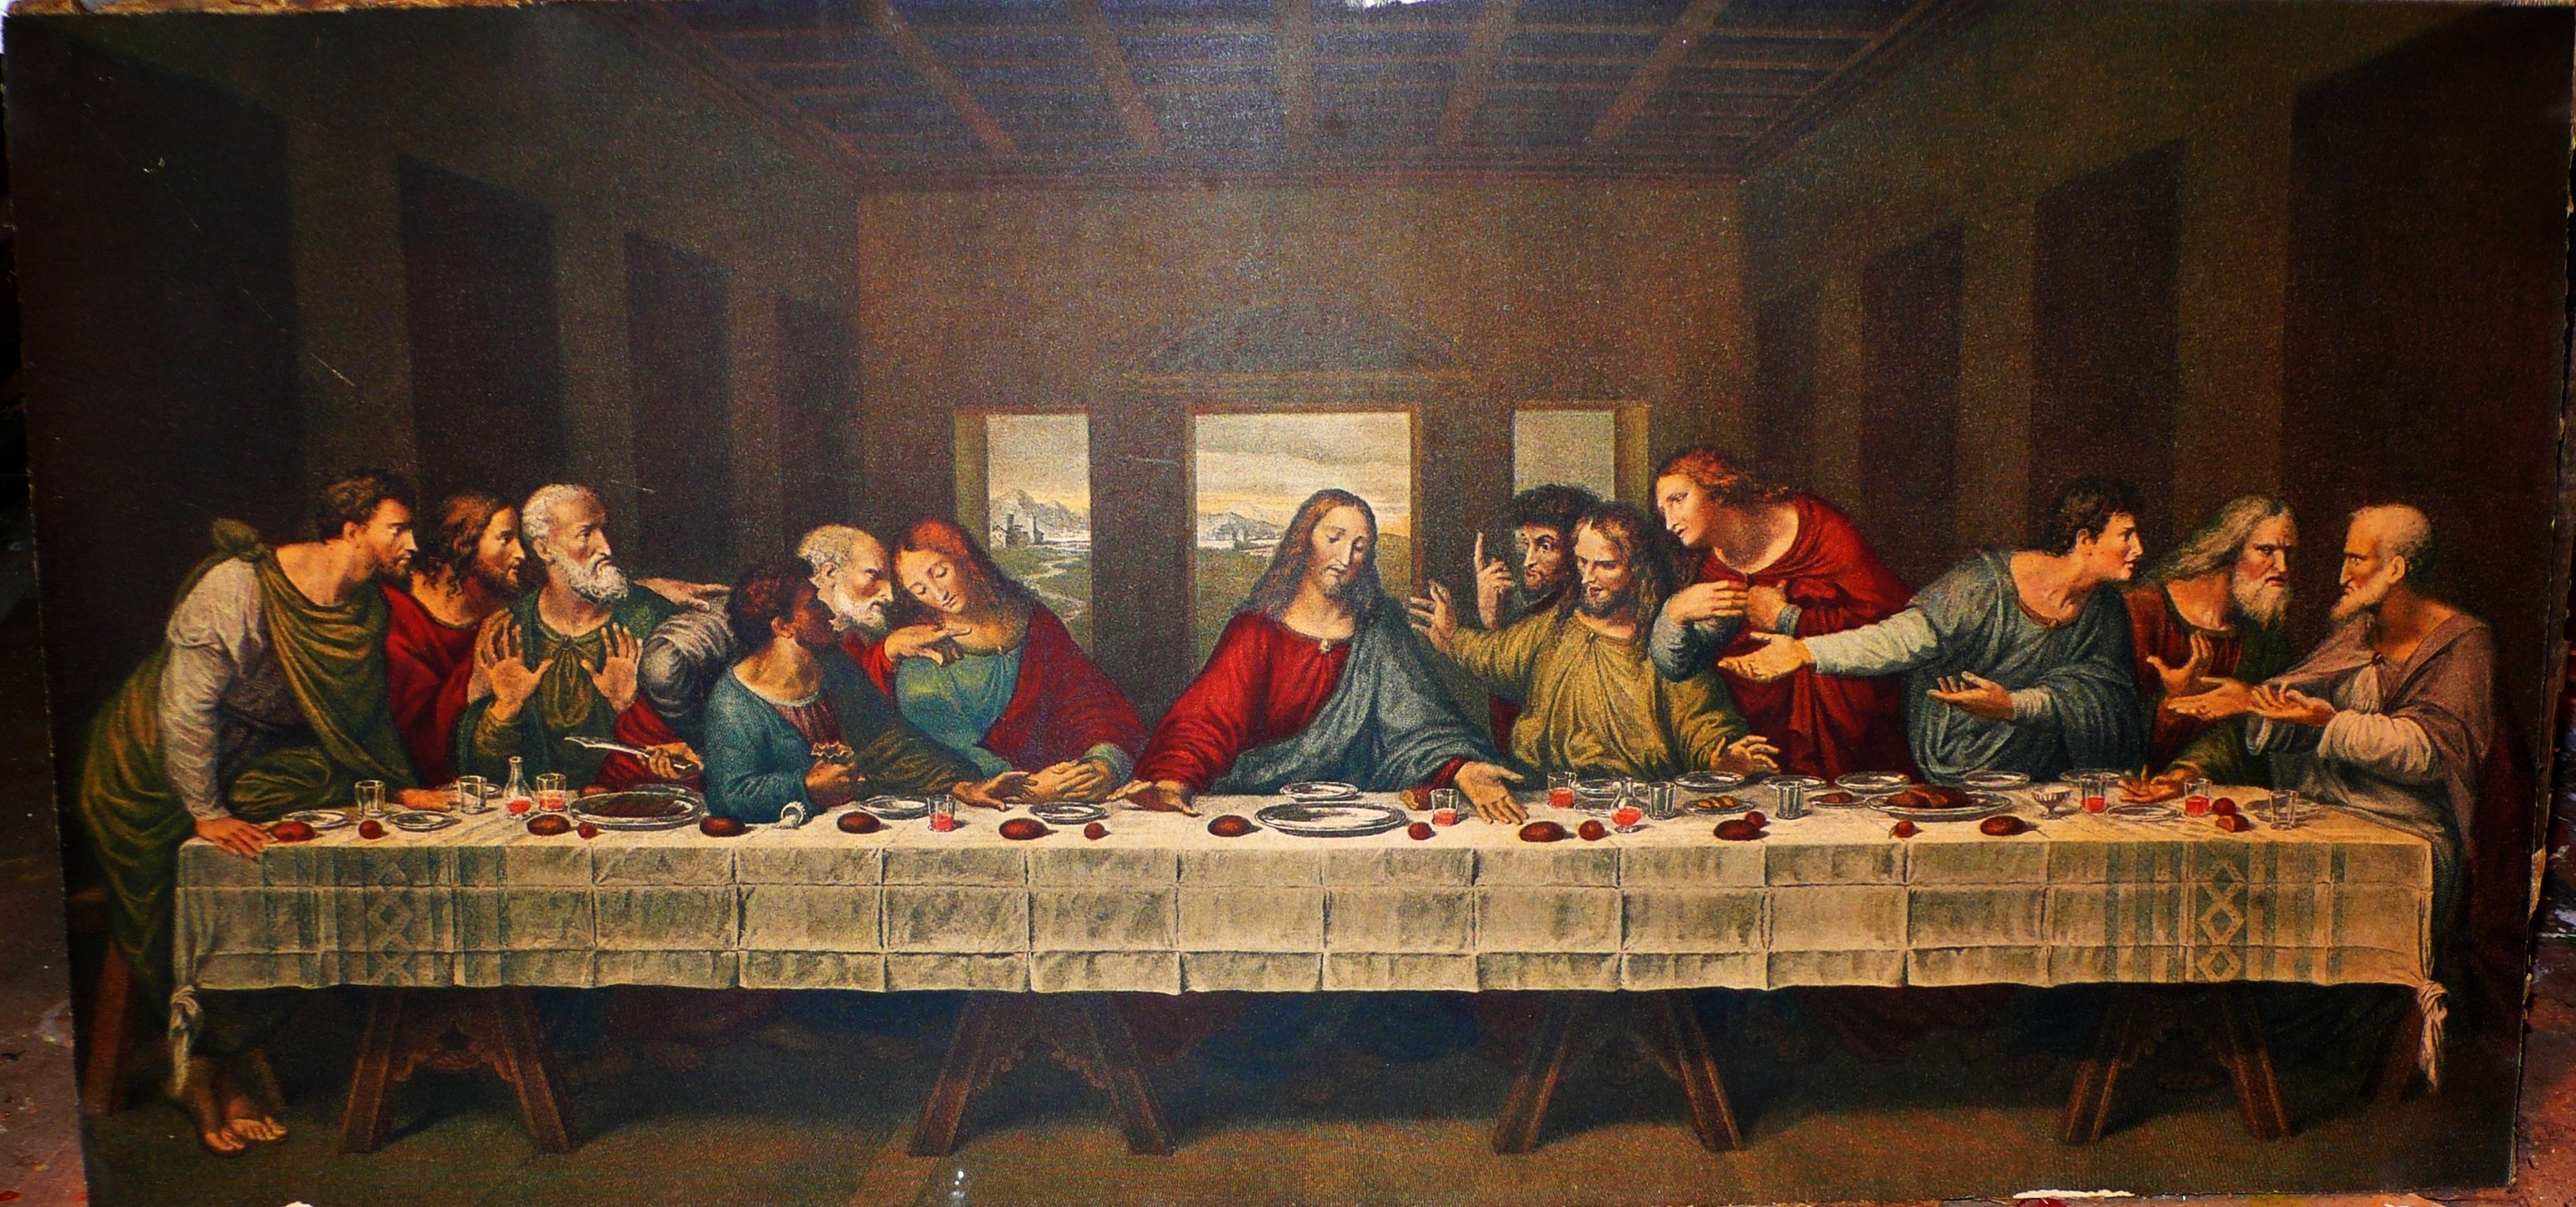 the last supper full hd wallpaper and background image | 3103x1454